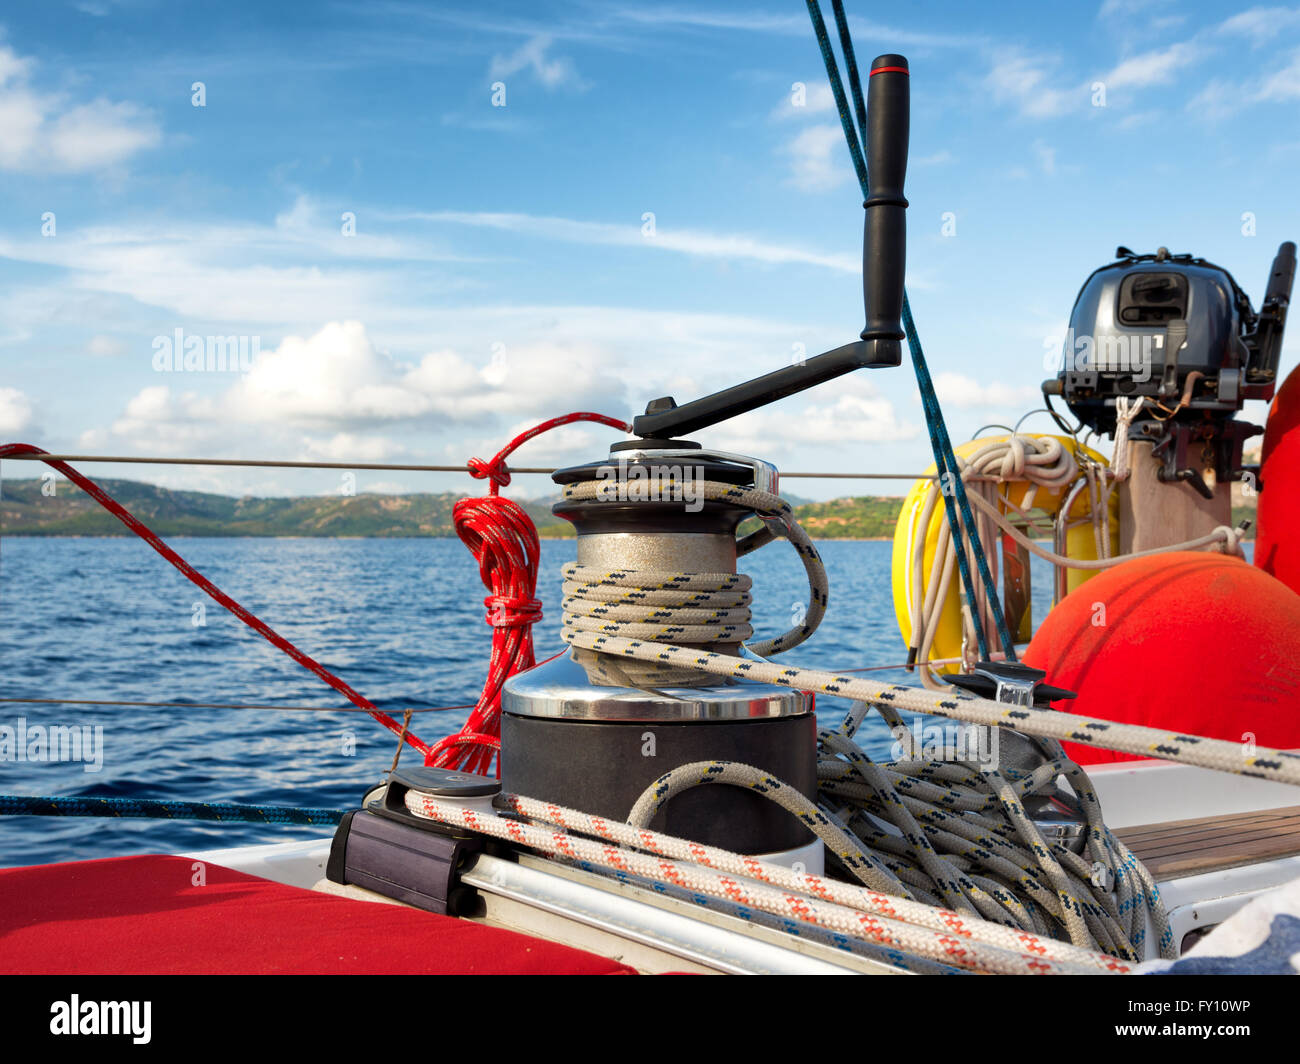 cruising, winch on a sailing boat - Stock Image